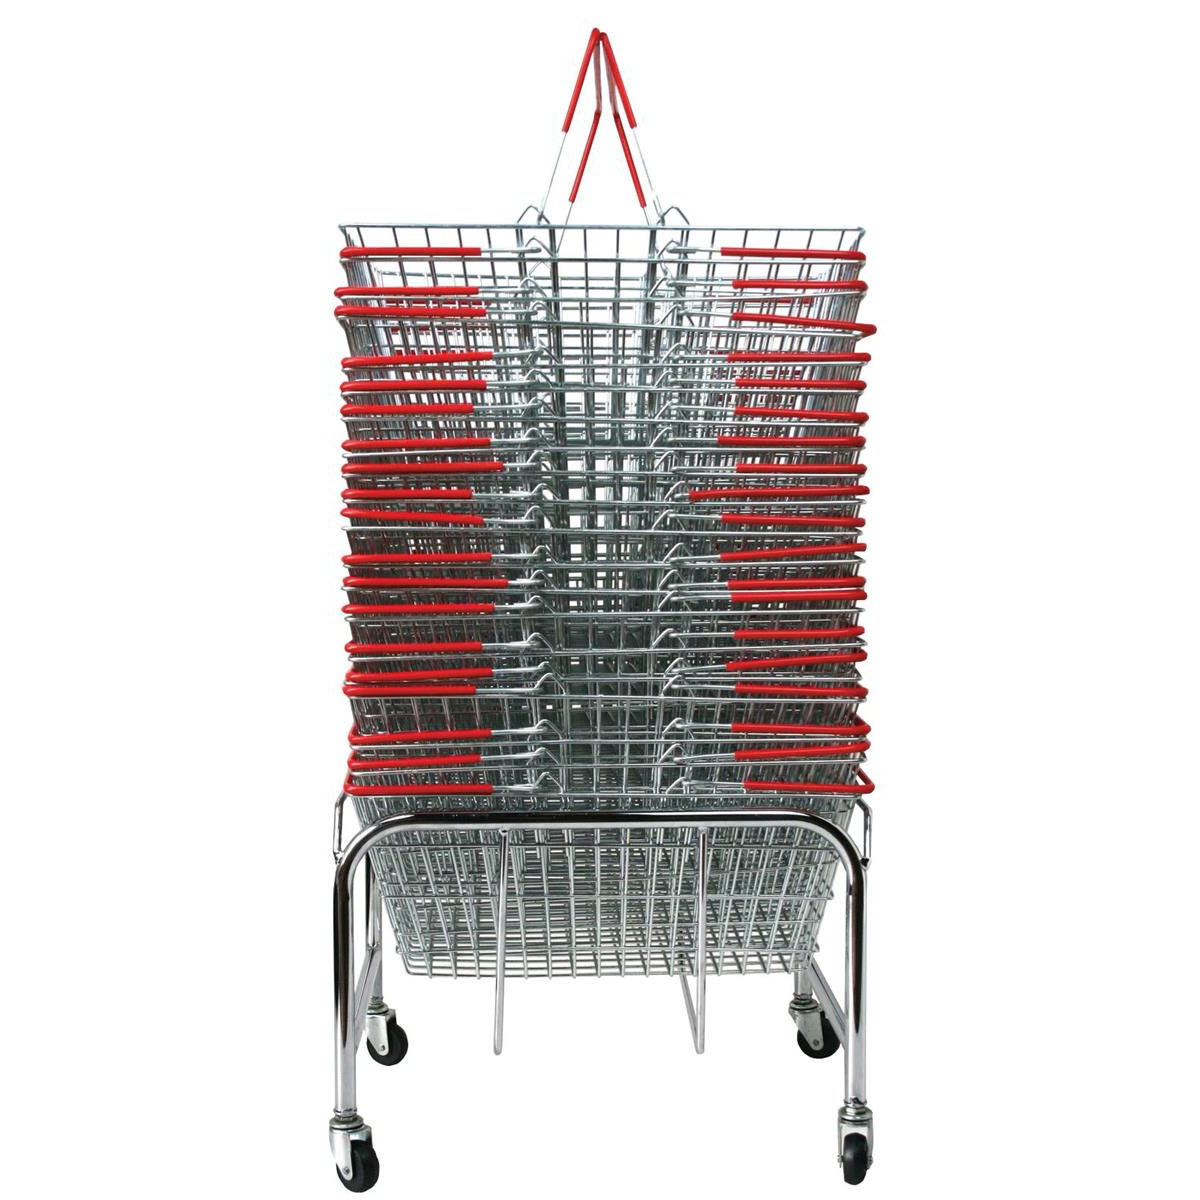 Merchandise baskets Red Wire Baskets Capacity 21 Litres x20 Plus Mobile Storage Plinth